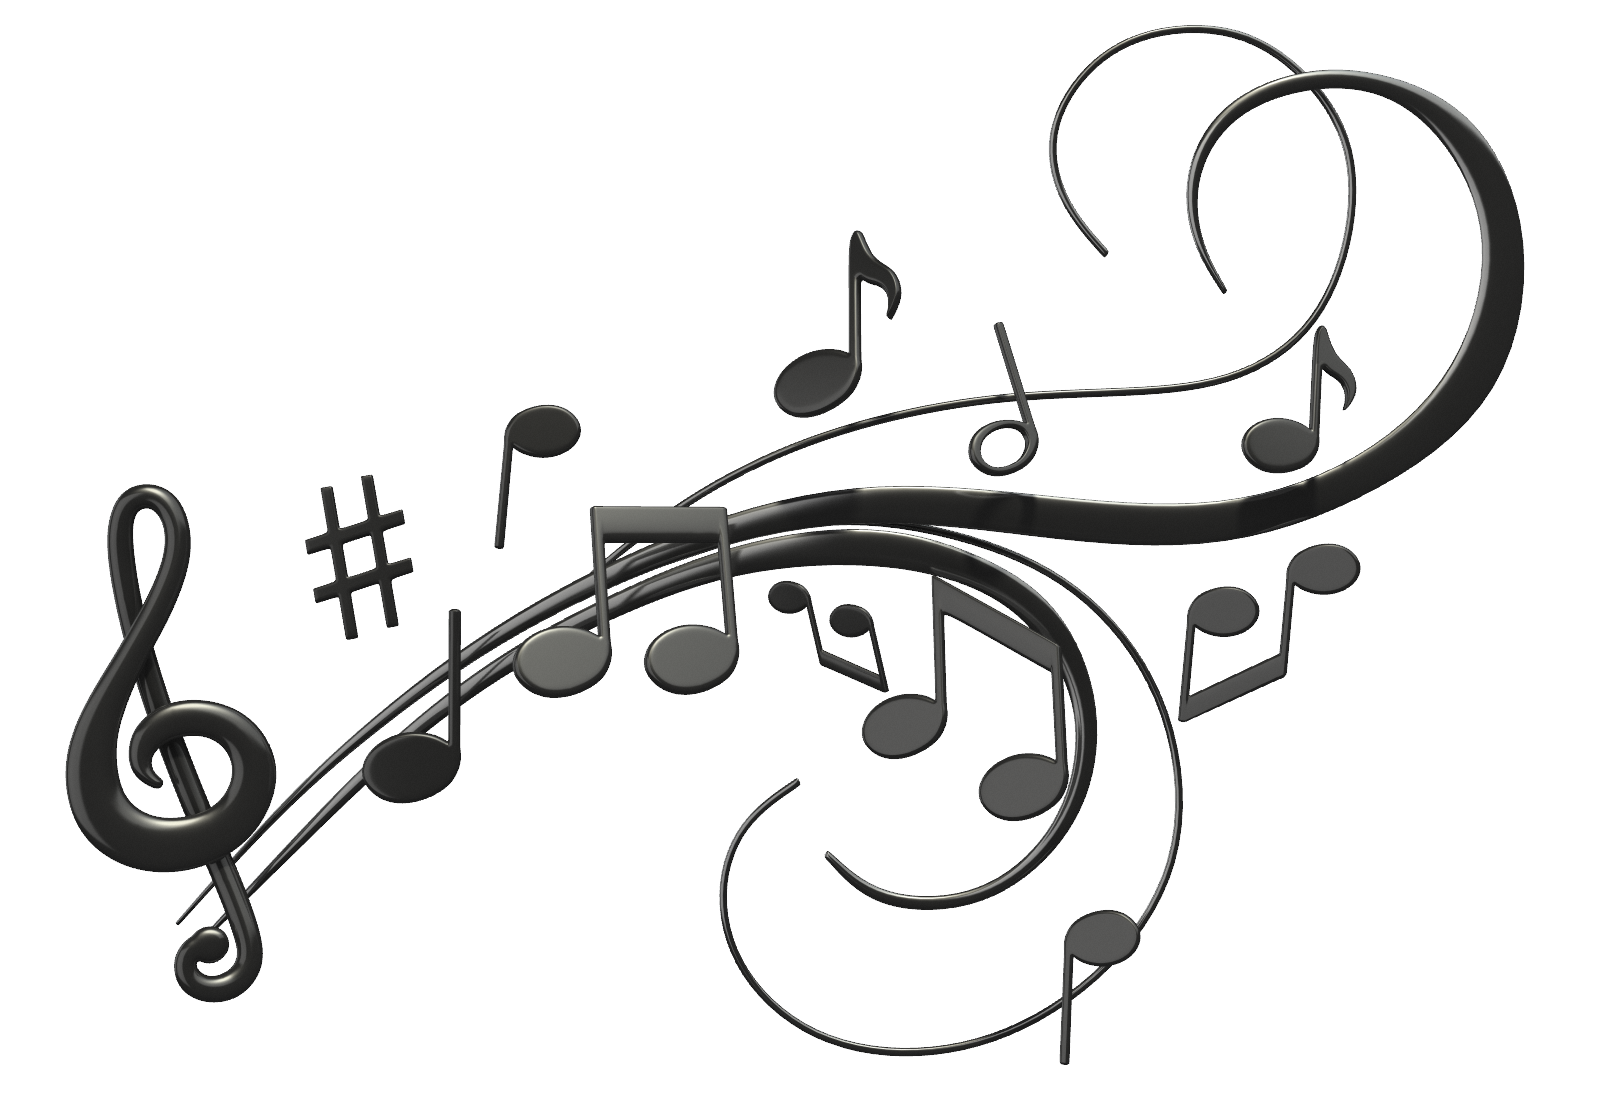 Png Hd Musical Notes Symbols Transparent Hd Musical Notes: Zach The Cat